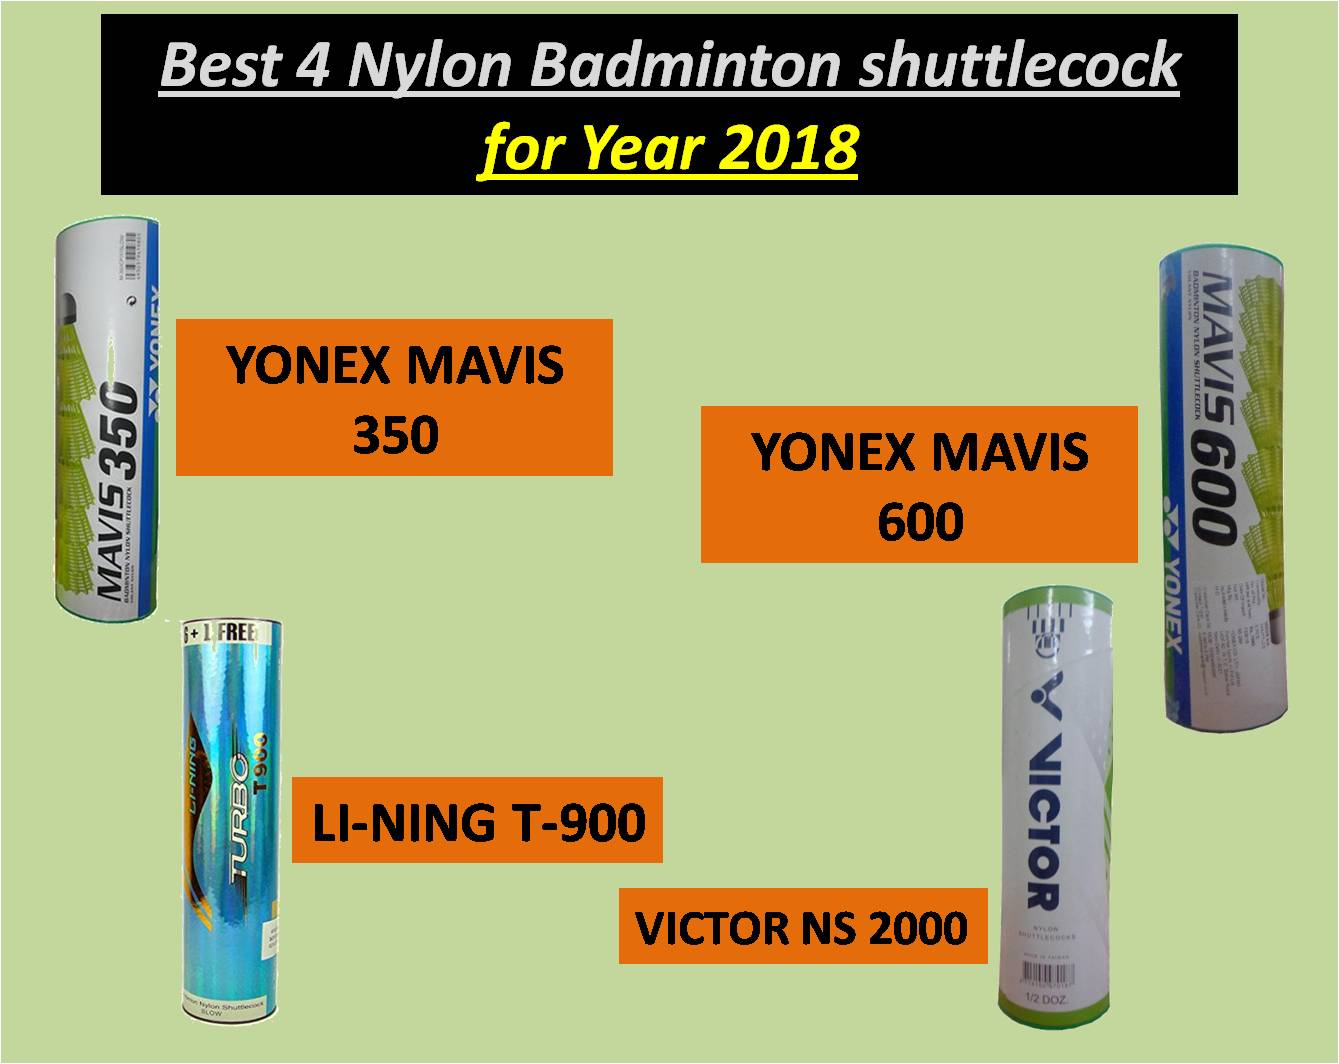 Best 4 Nylon Badminton shuttlecock for Year 2018